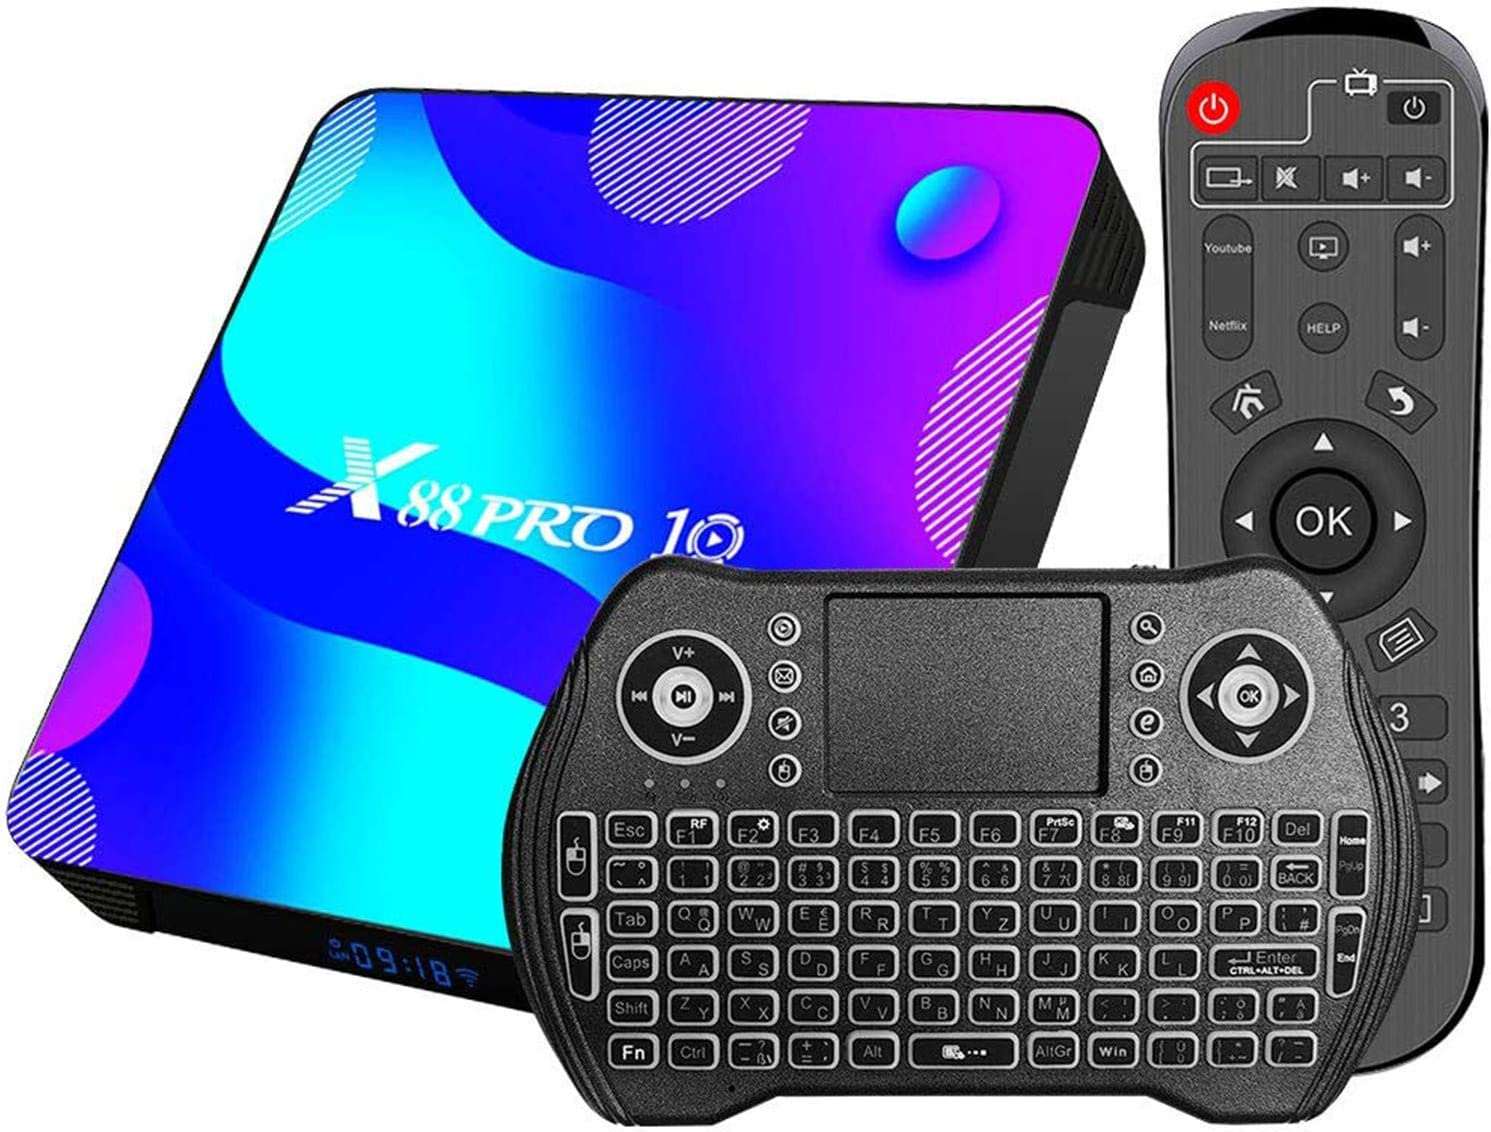 DOOK [2021 Newest] Android 11.0 TV Box, X88 PRO 10 Android Box RK3318 Quad-Core Cortex-A53 CPU with Dual-WiFi 2.4G/5.8GHz BT 4.0, with Wireless Mini Keyboard Ultra HD 4K HDR TV Box